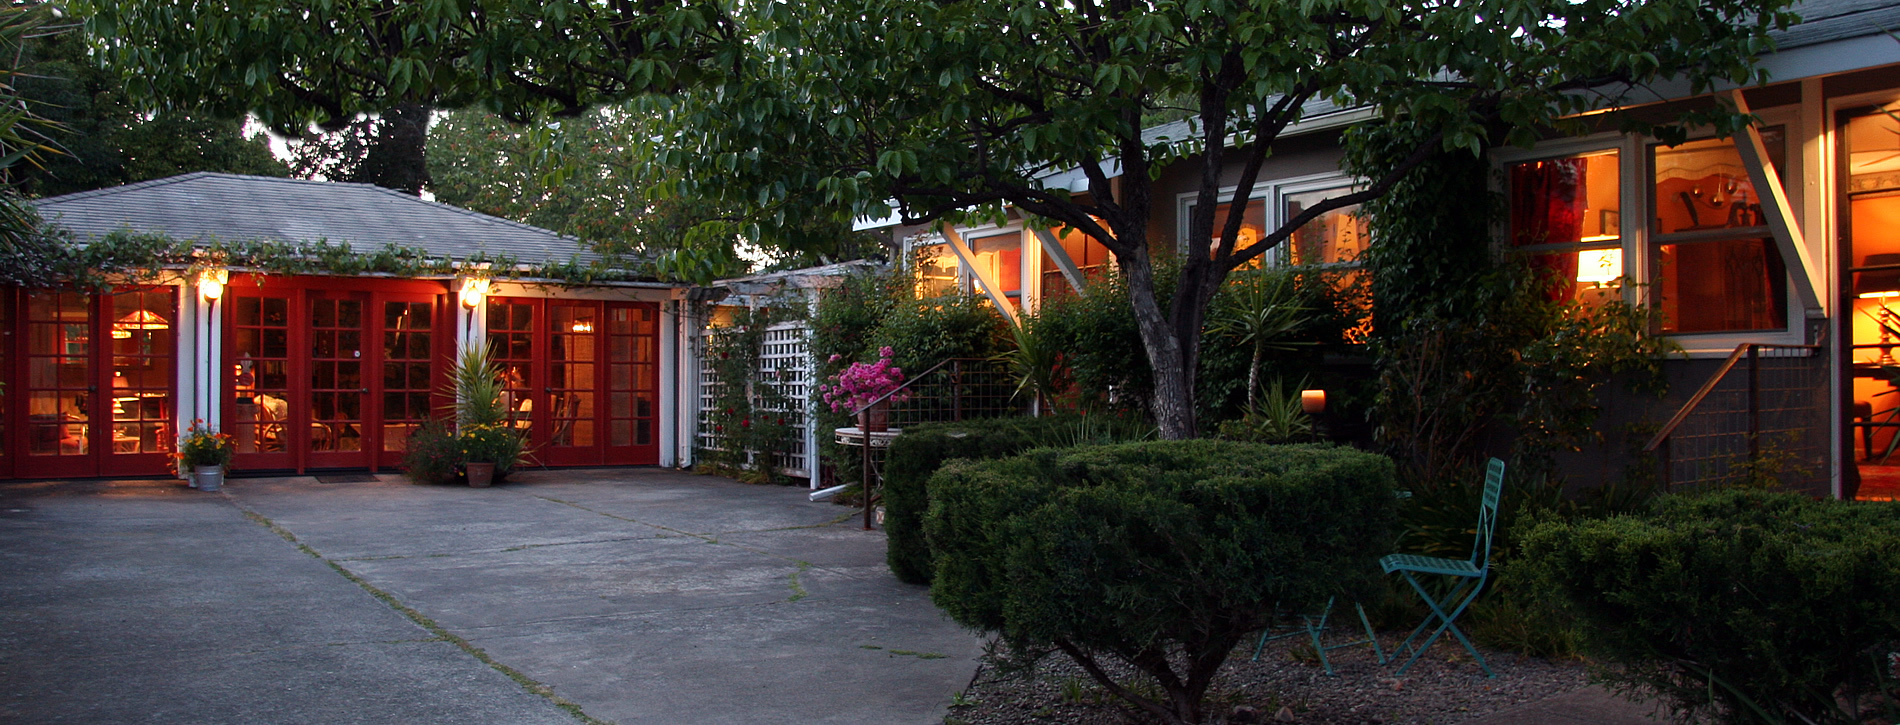 calistoga chien blanc bungalows